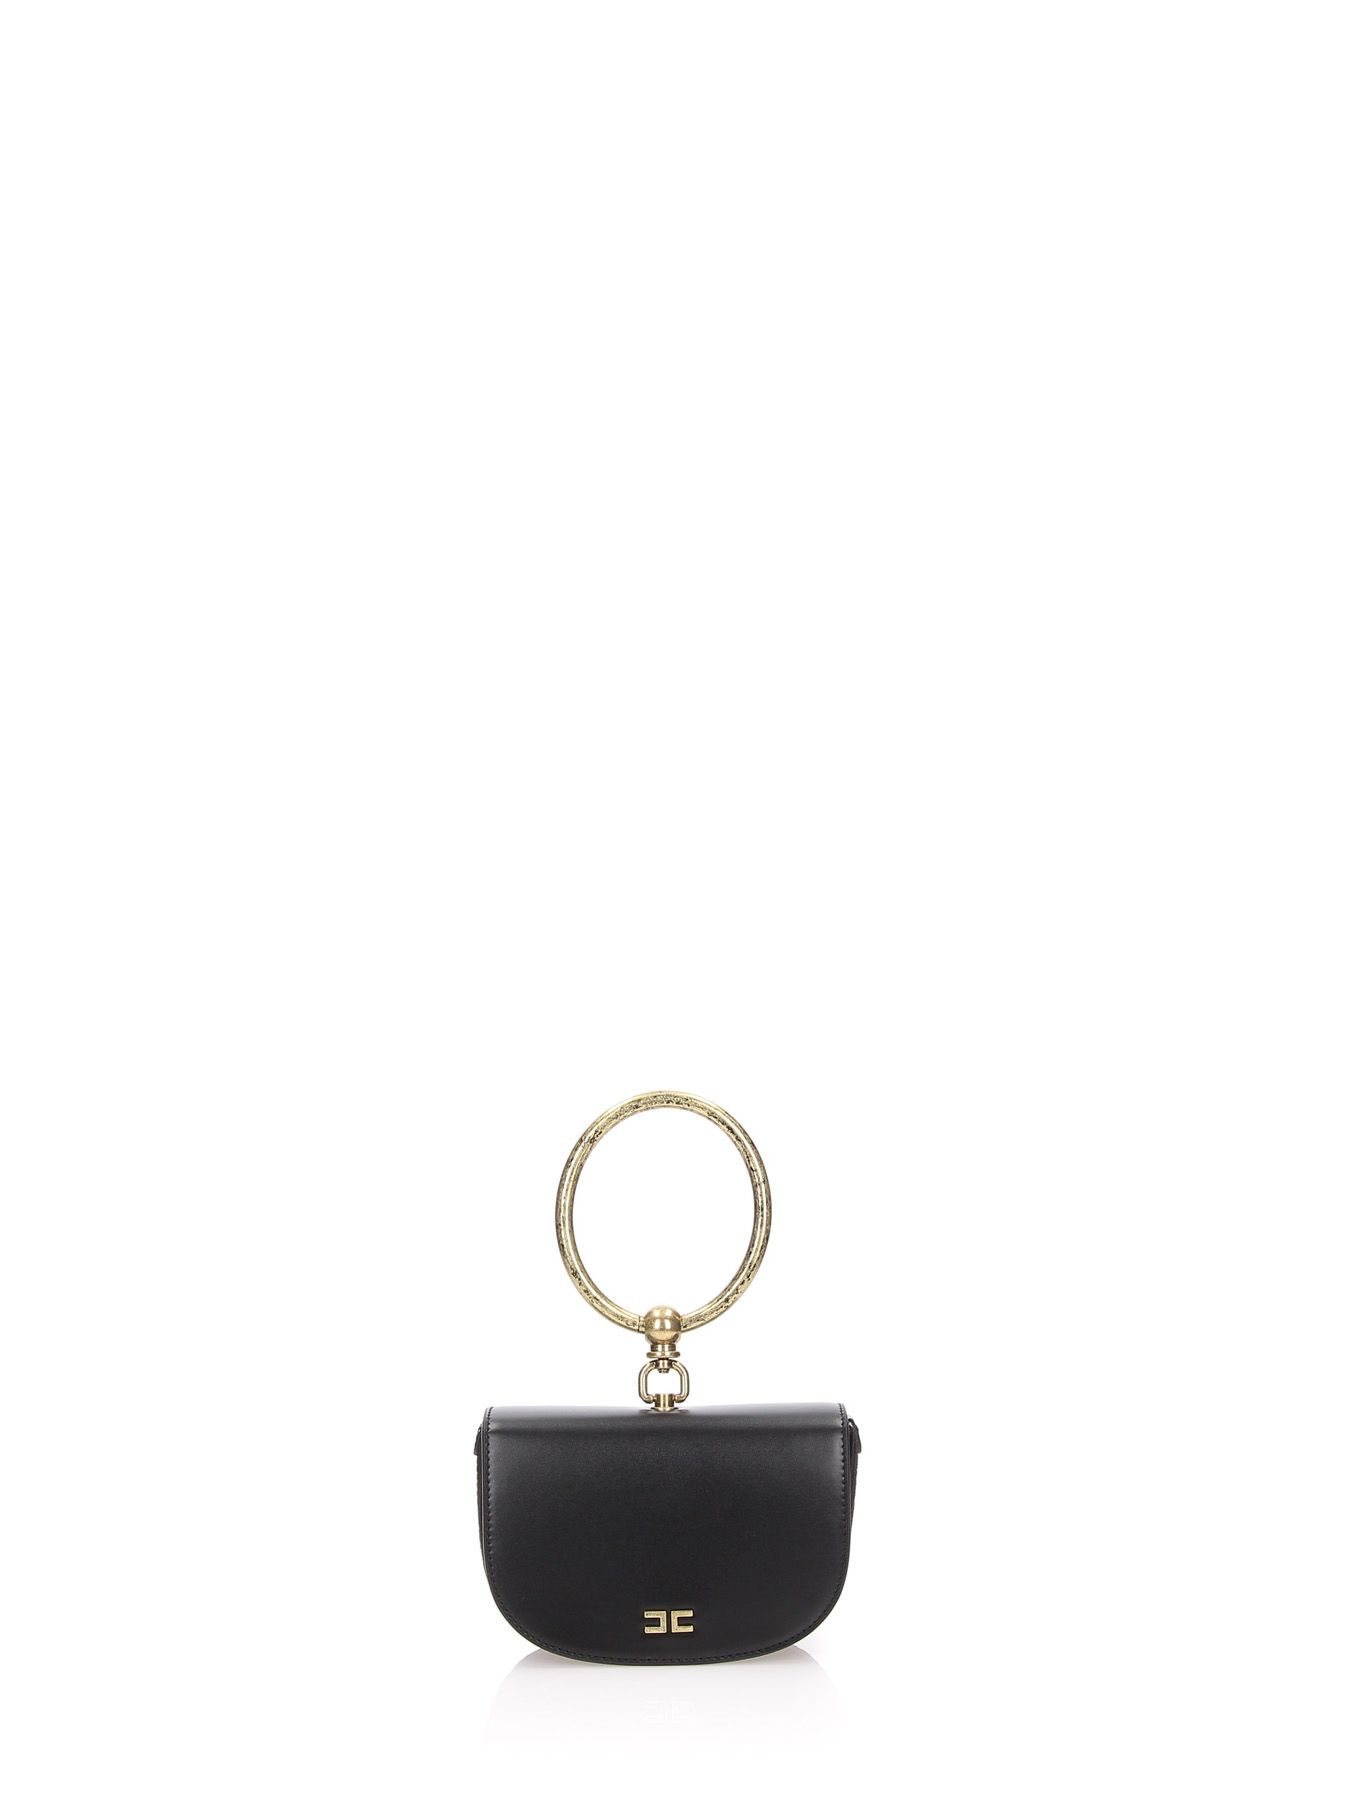 Ring Handle Bag in Black